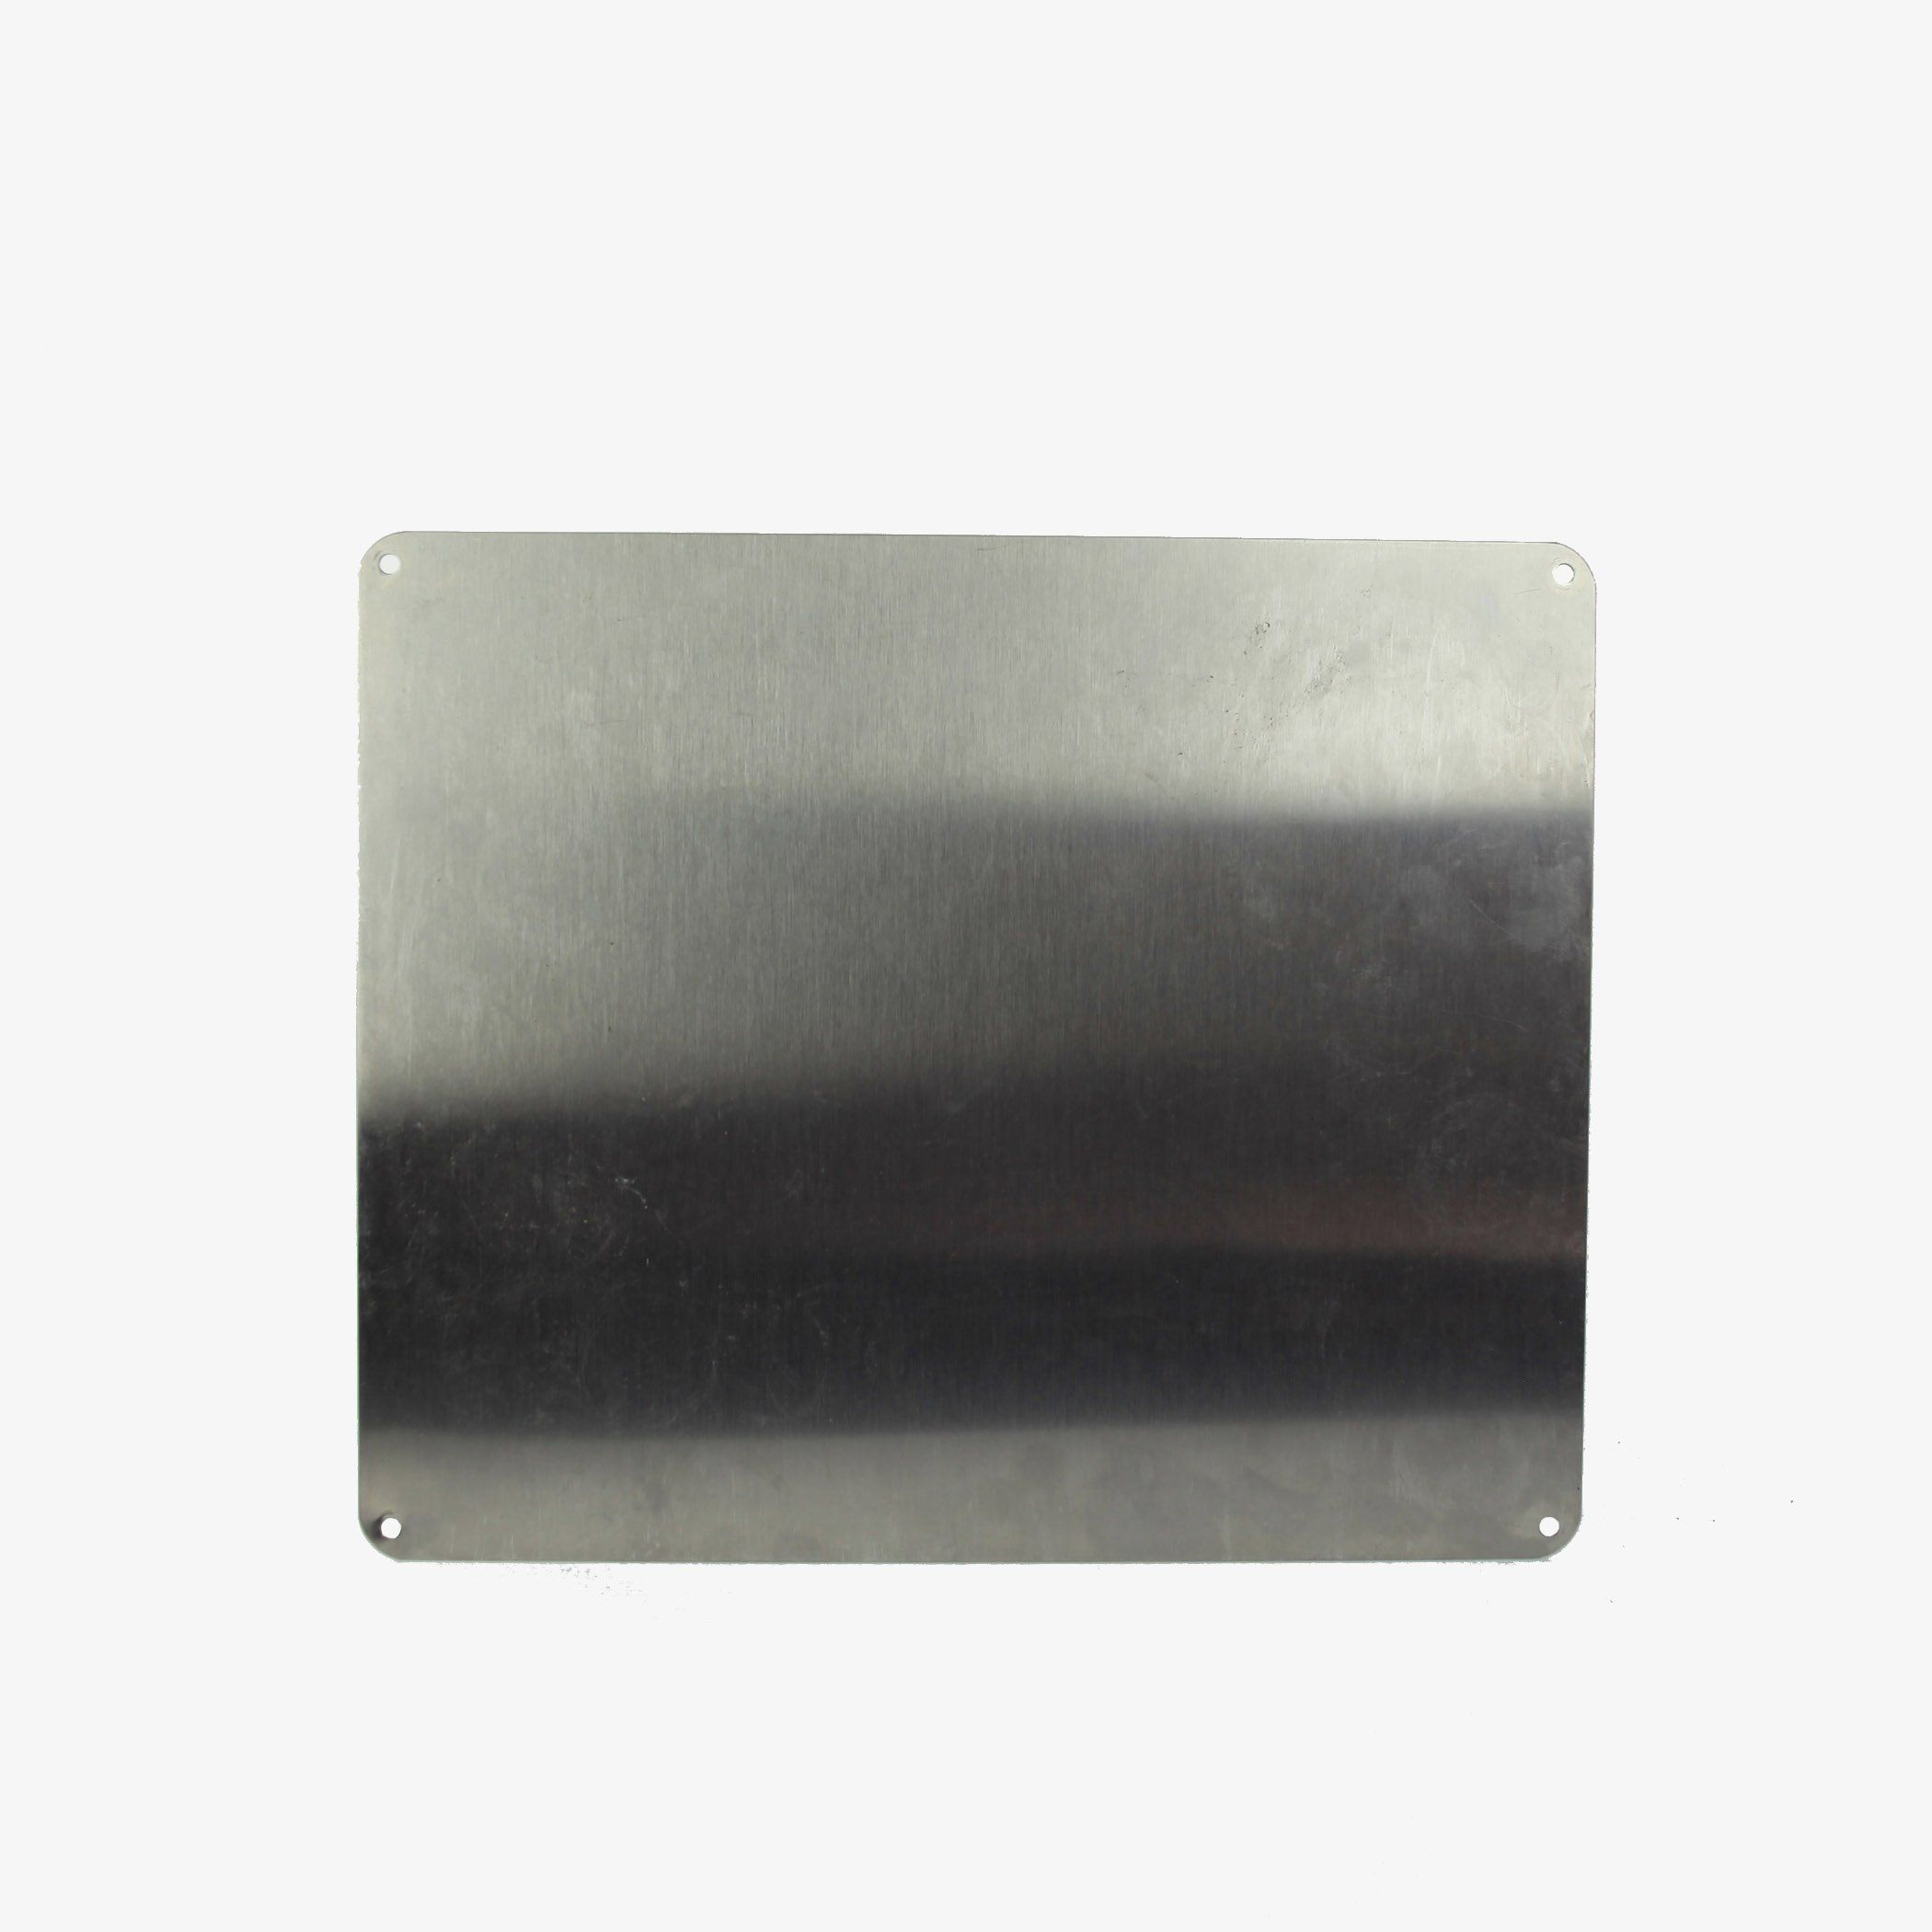 Stainless Steel Wall Base Steel Wall Spice Jars Plates On Wall